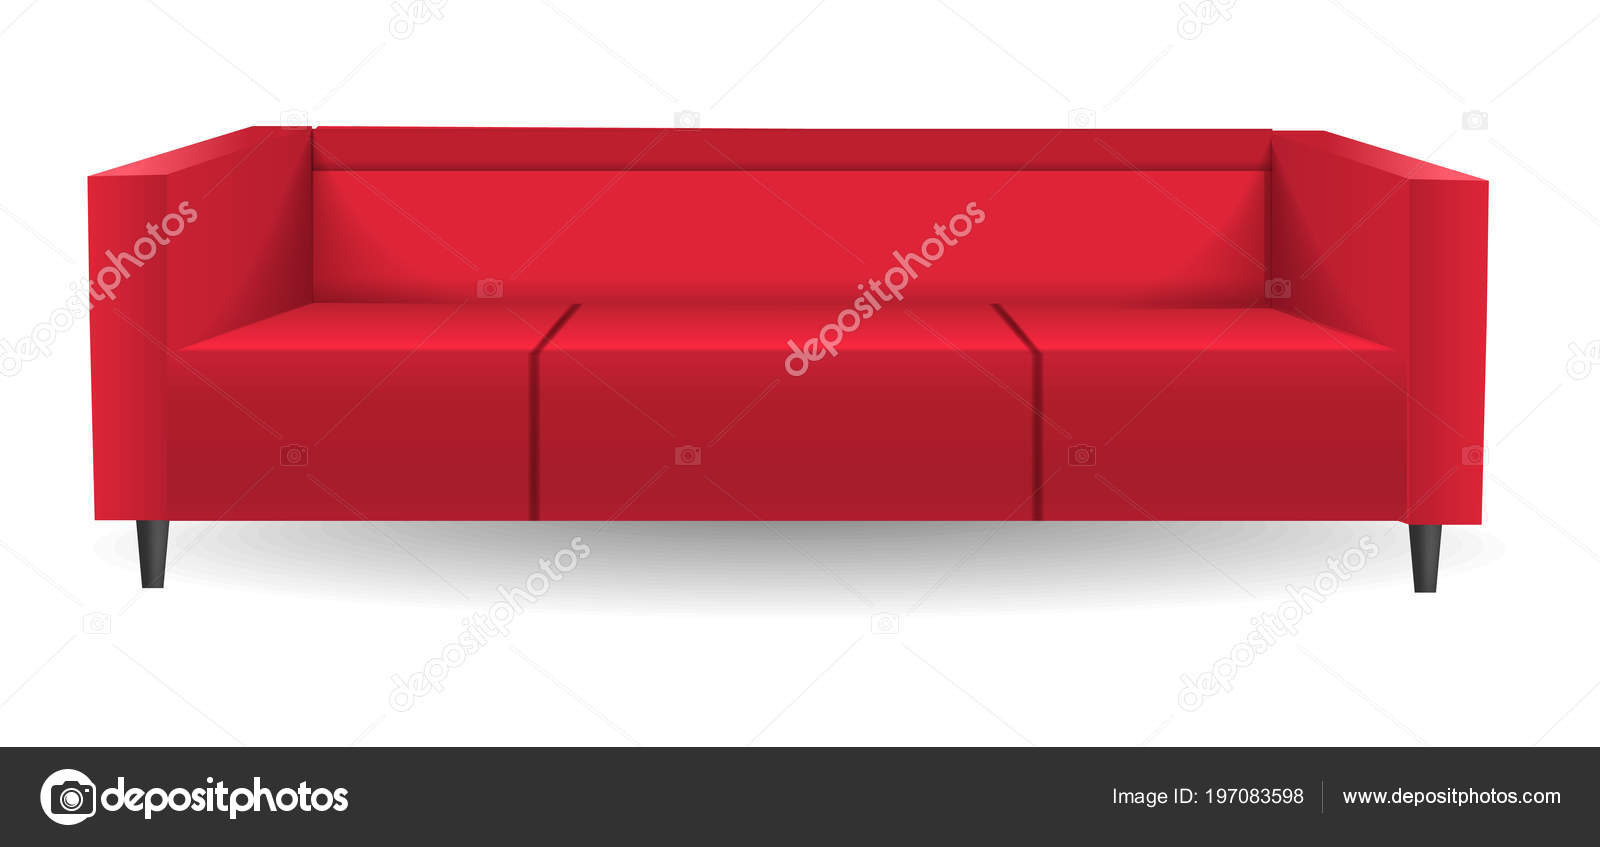 Miraculous Red Corner Sofa Mockup Realistic Style Stock Vector Caraccident5 Cool Chair Designs And Ideas Caraccident5Info